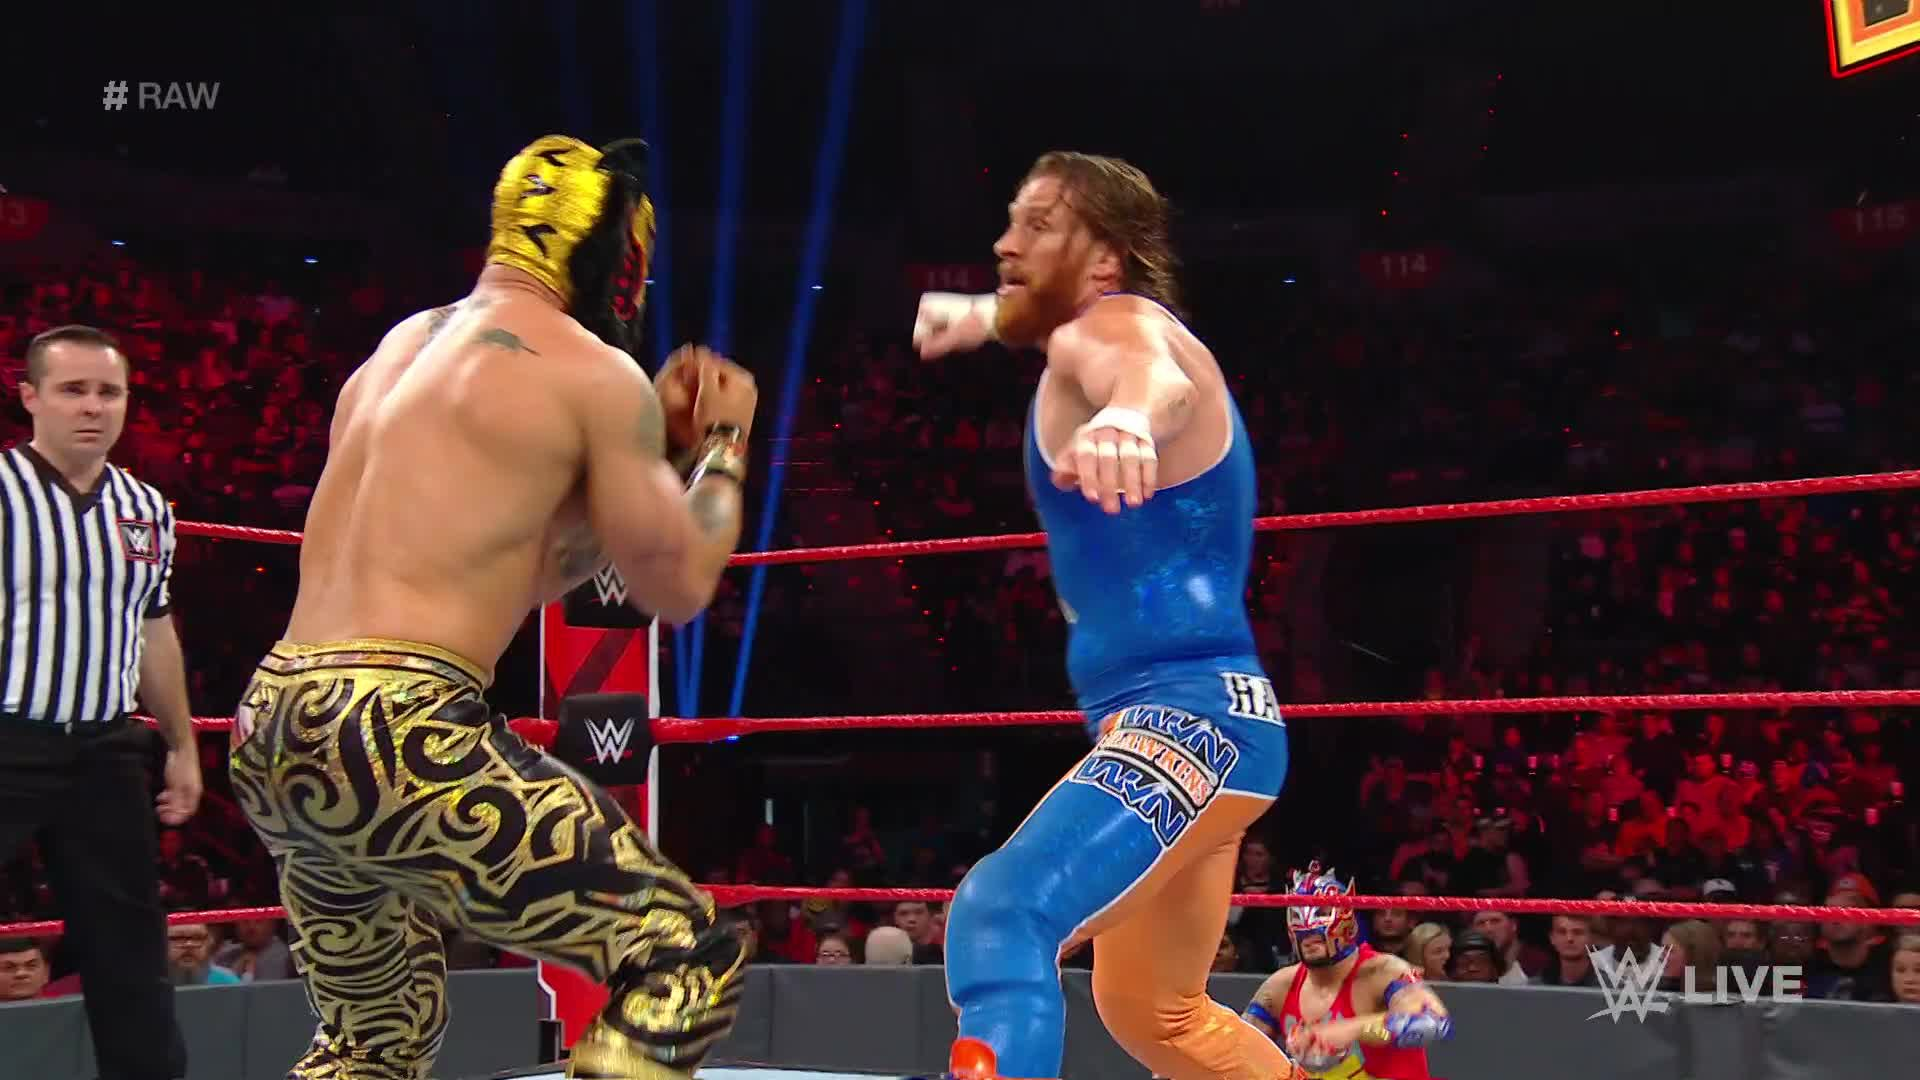 Zack Ryder & Curt Hawkins vs. Lucha House Party: Raw, 18 Fev, 2019